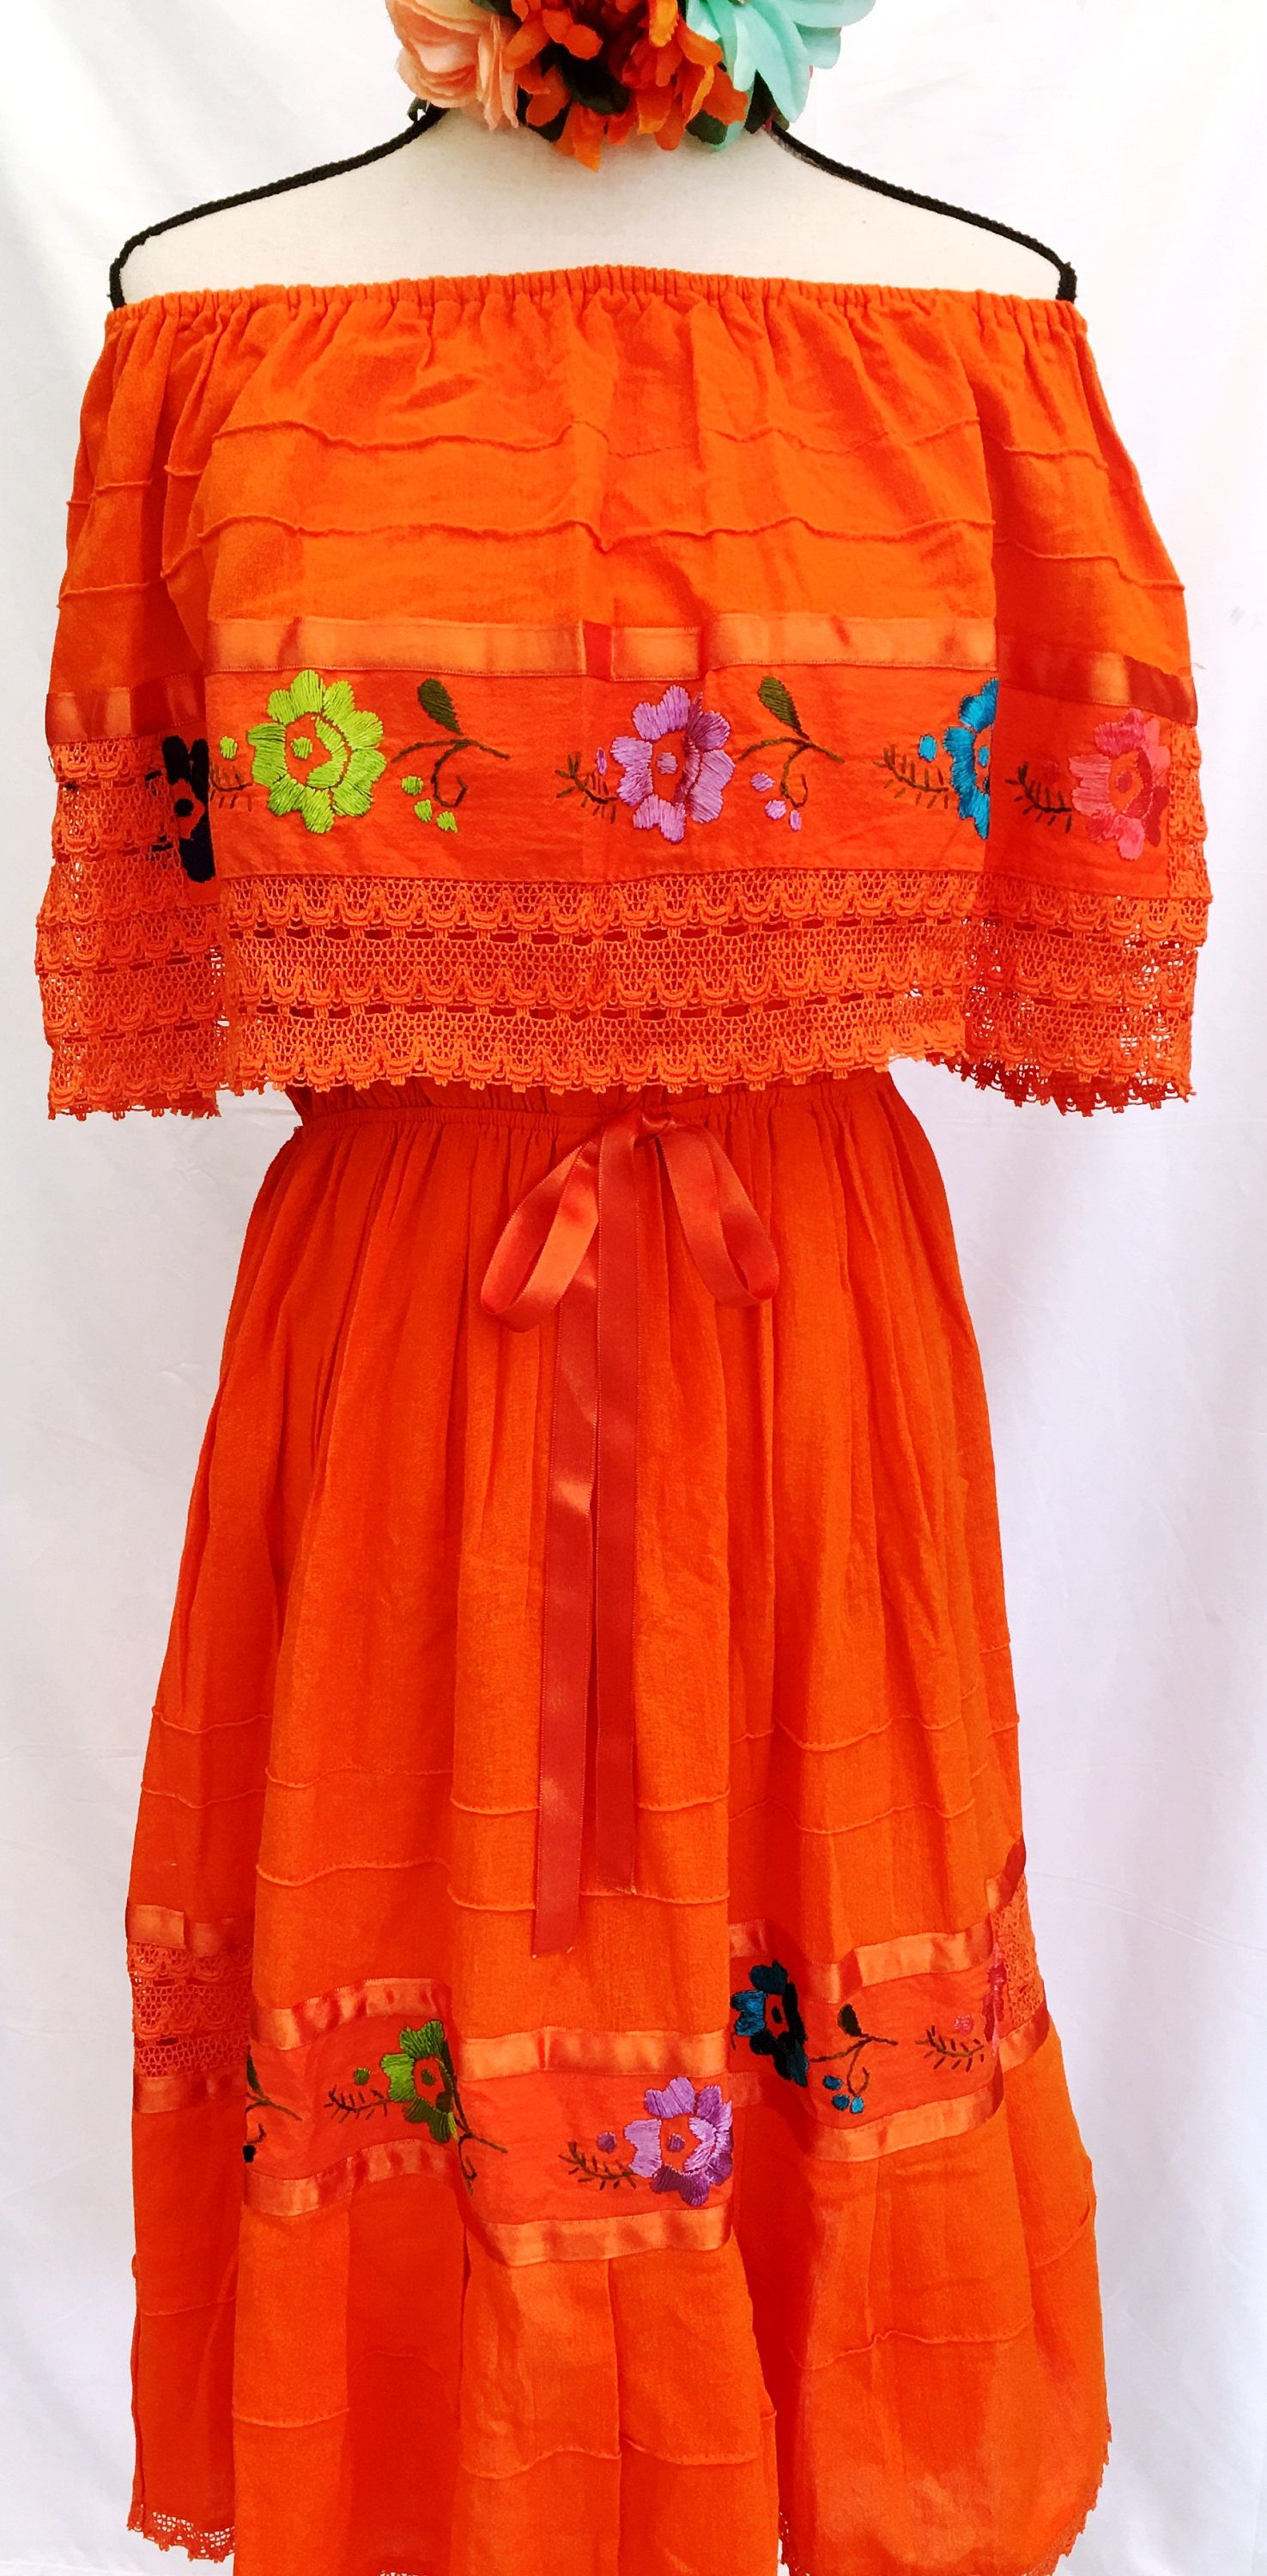 Mexican Dress Embroidered Crocheted W Ribbon Orange Floral Peasant Vintage Fits Up Xl Women S 100 Cot Mexican Dresses Mexican Embroidered Dress Mexican Outfit [ 3000 x 1476 Pixel ]